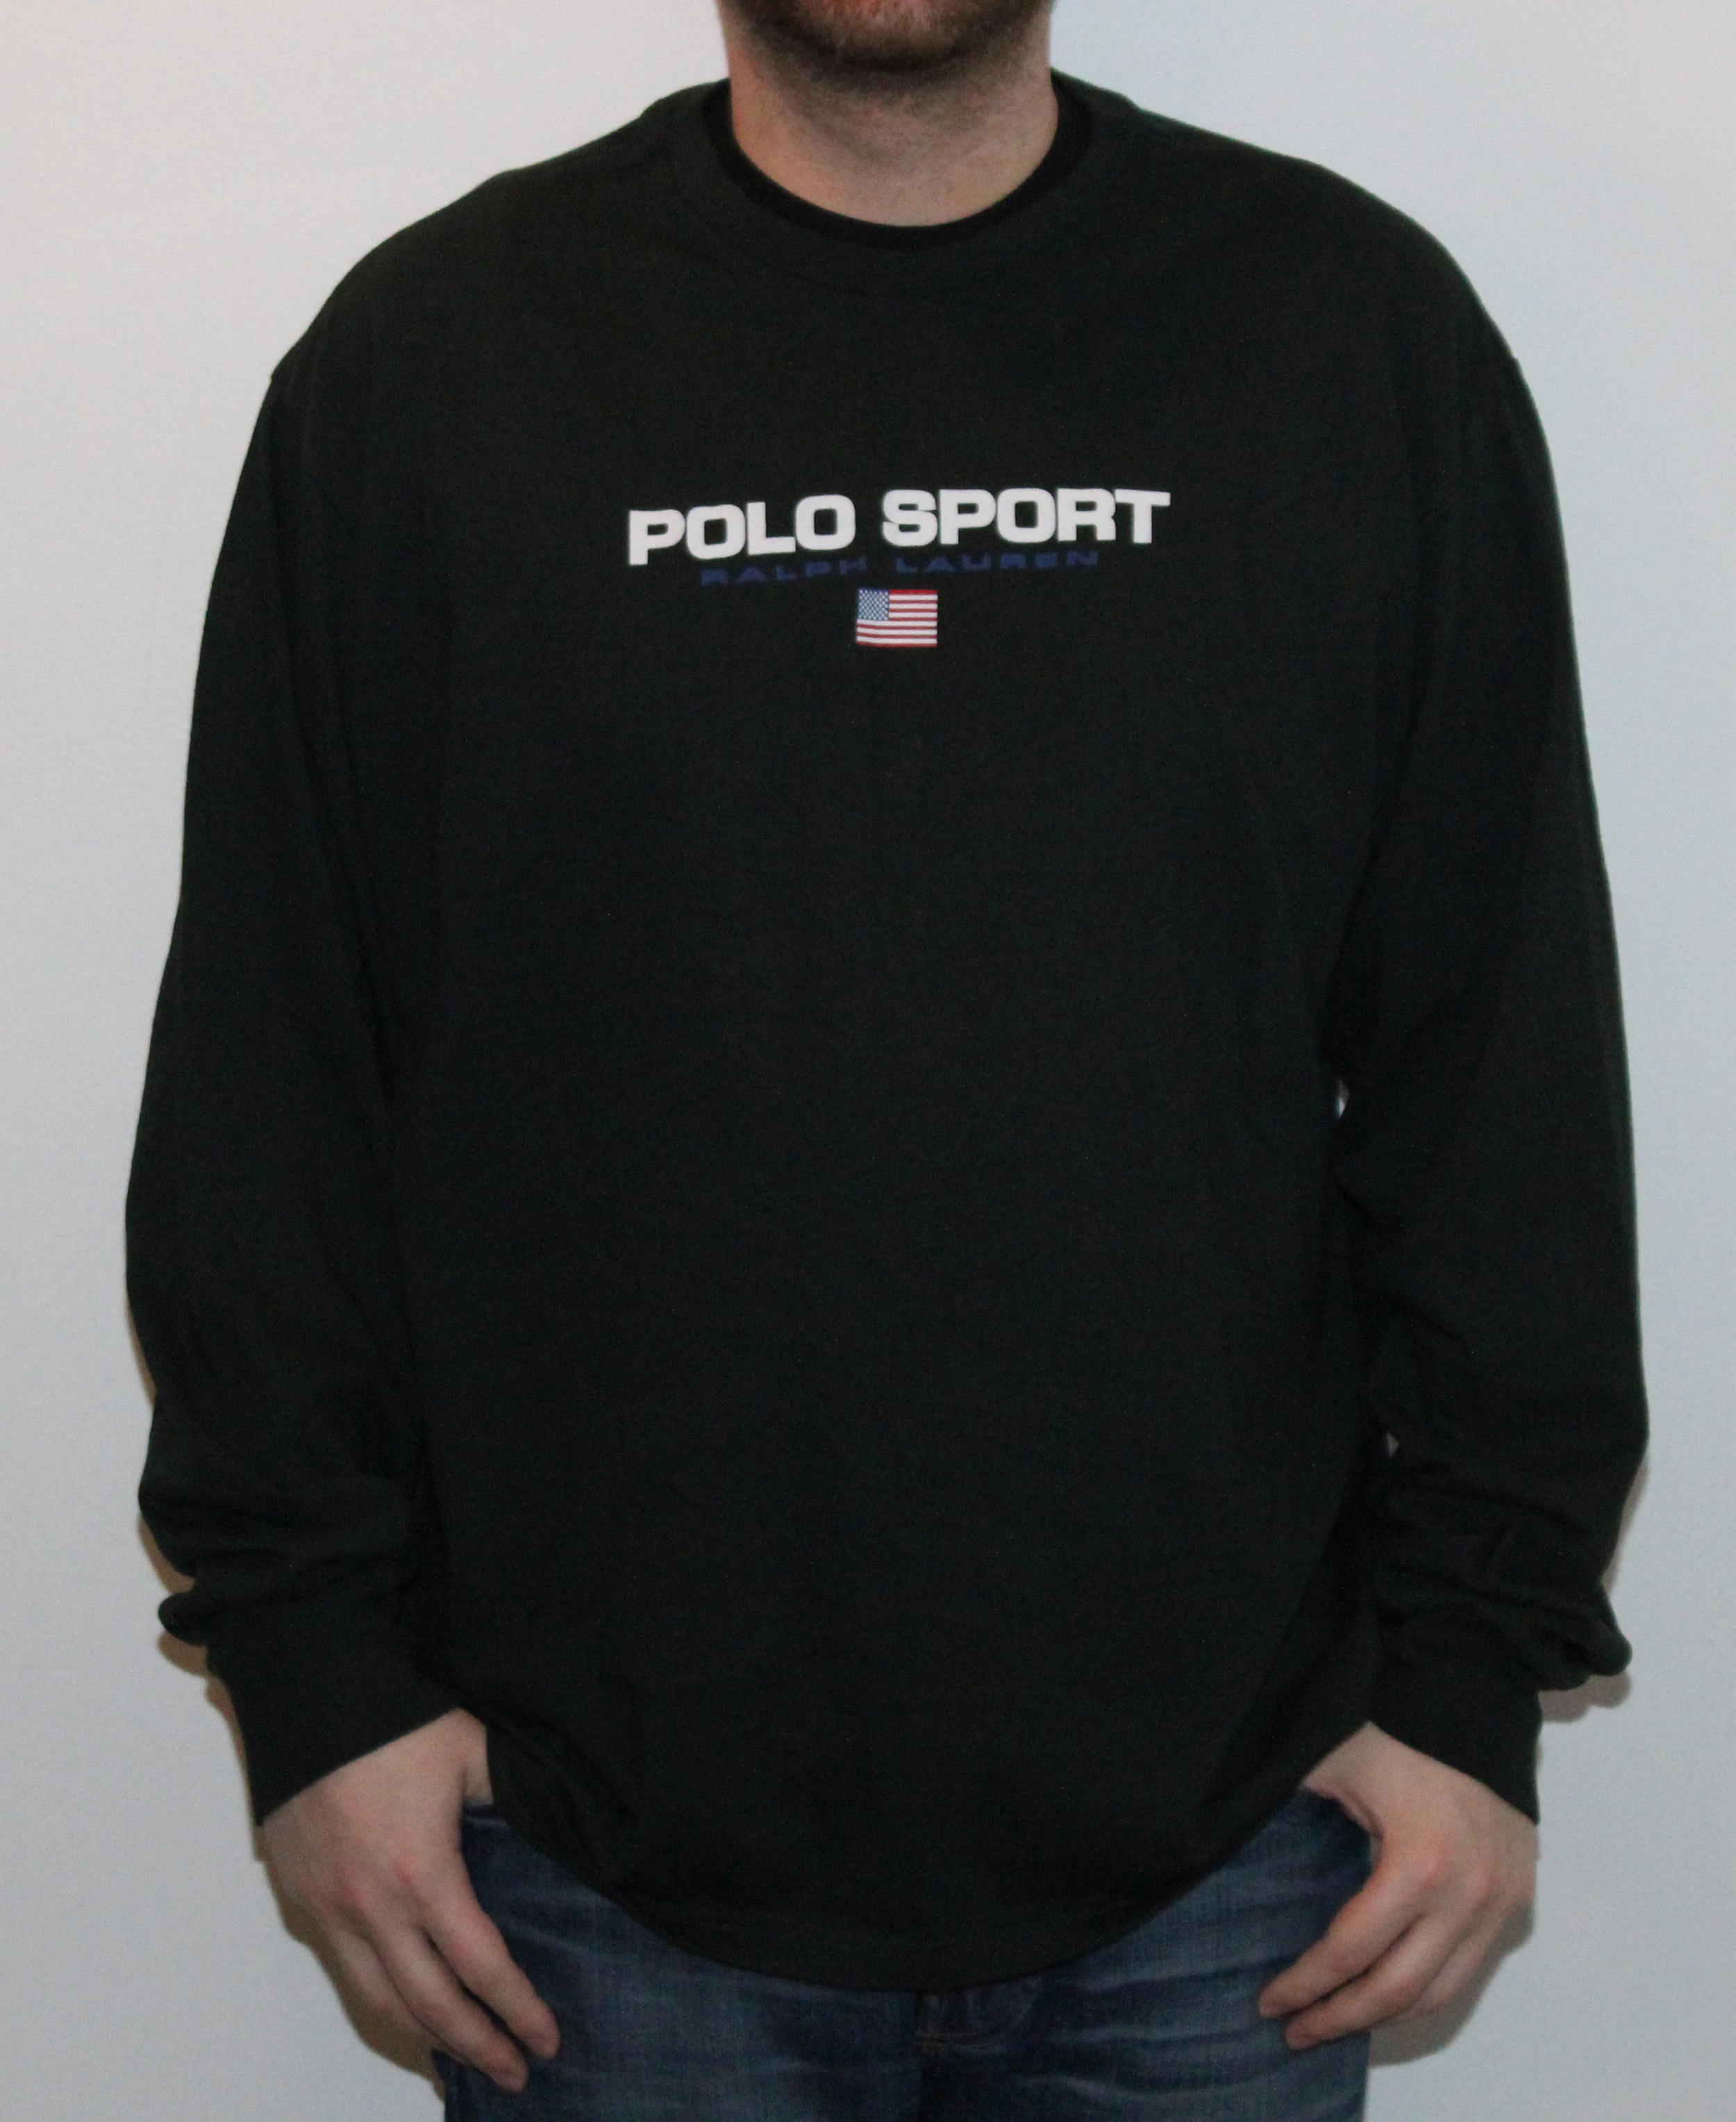 Sport Xl— Roots Shirtsize Ralph Royal Ls Polo Black Lauren Vintage T QxCtshrdB